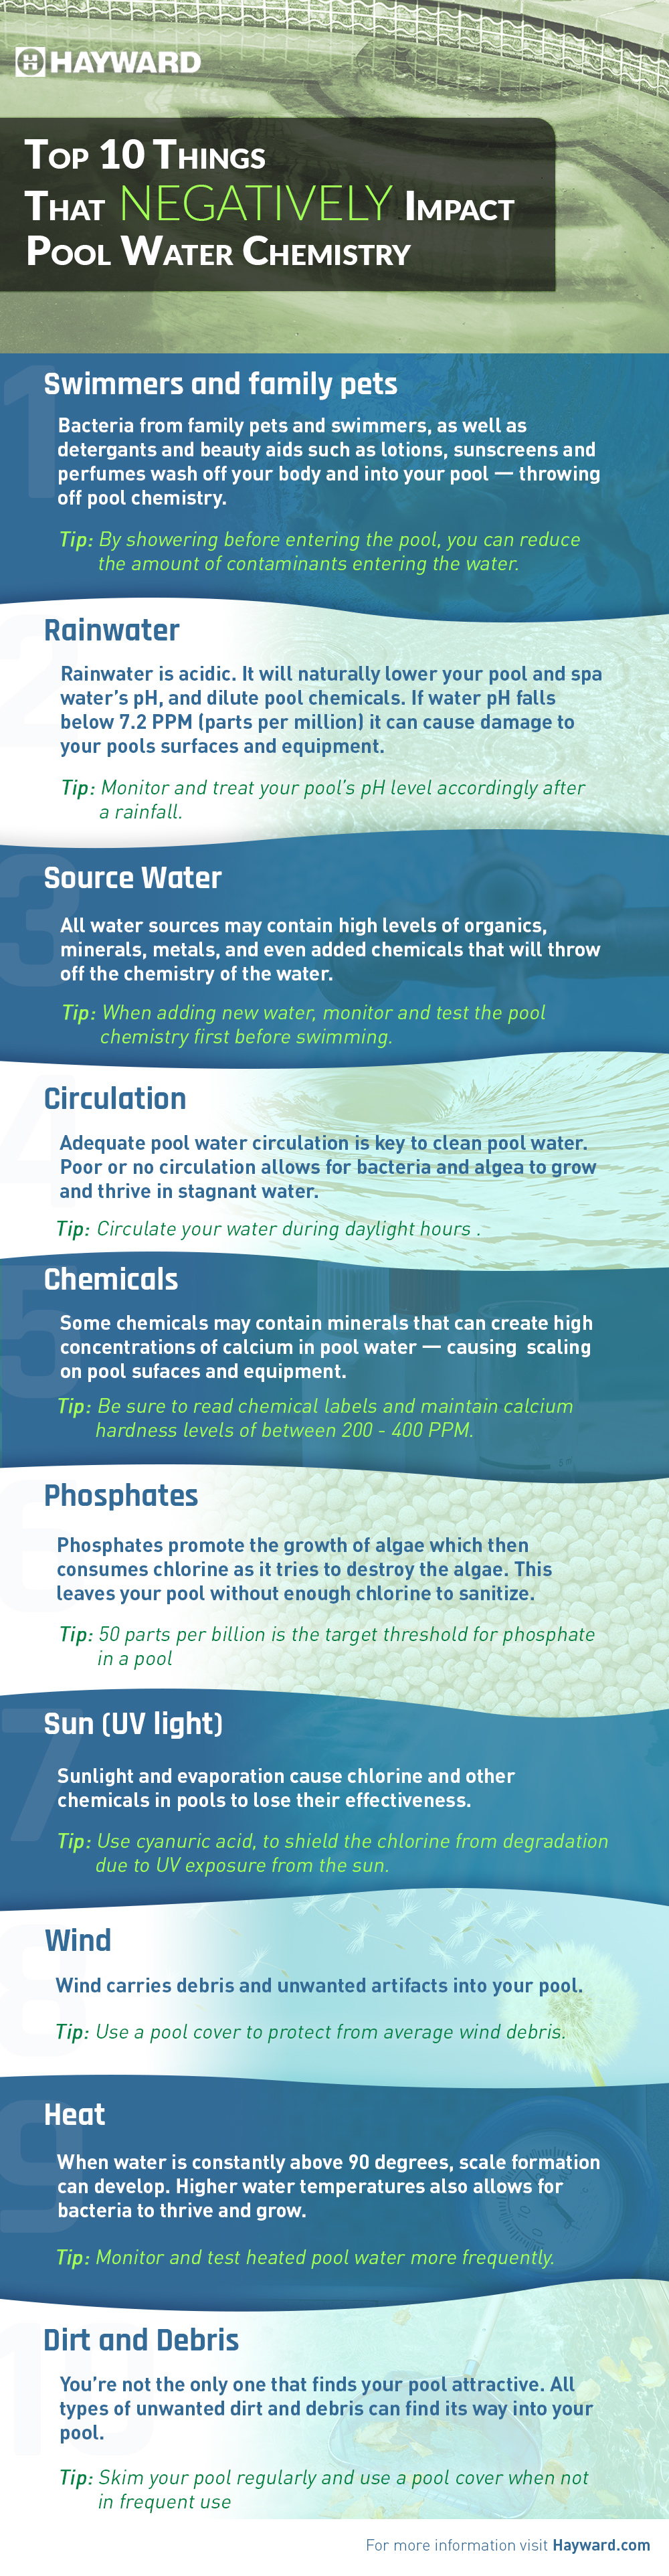 Hayward Negative Pool Water Chemistry Infographic